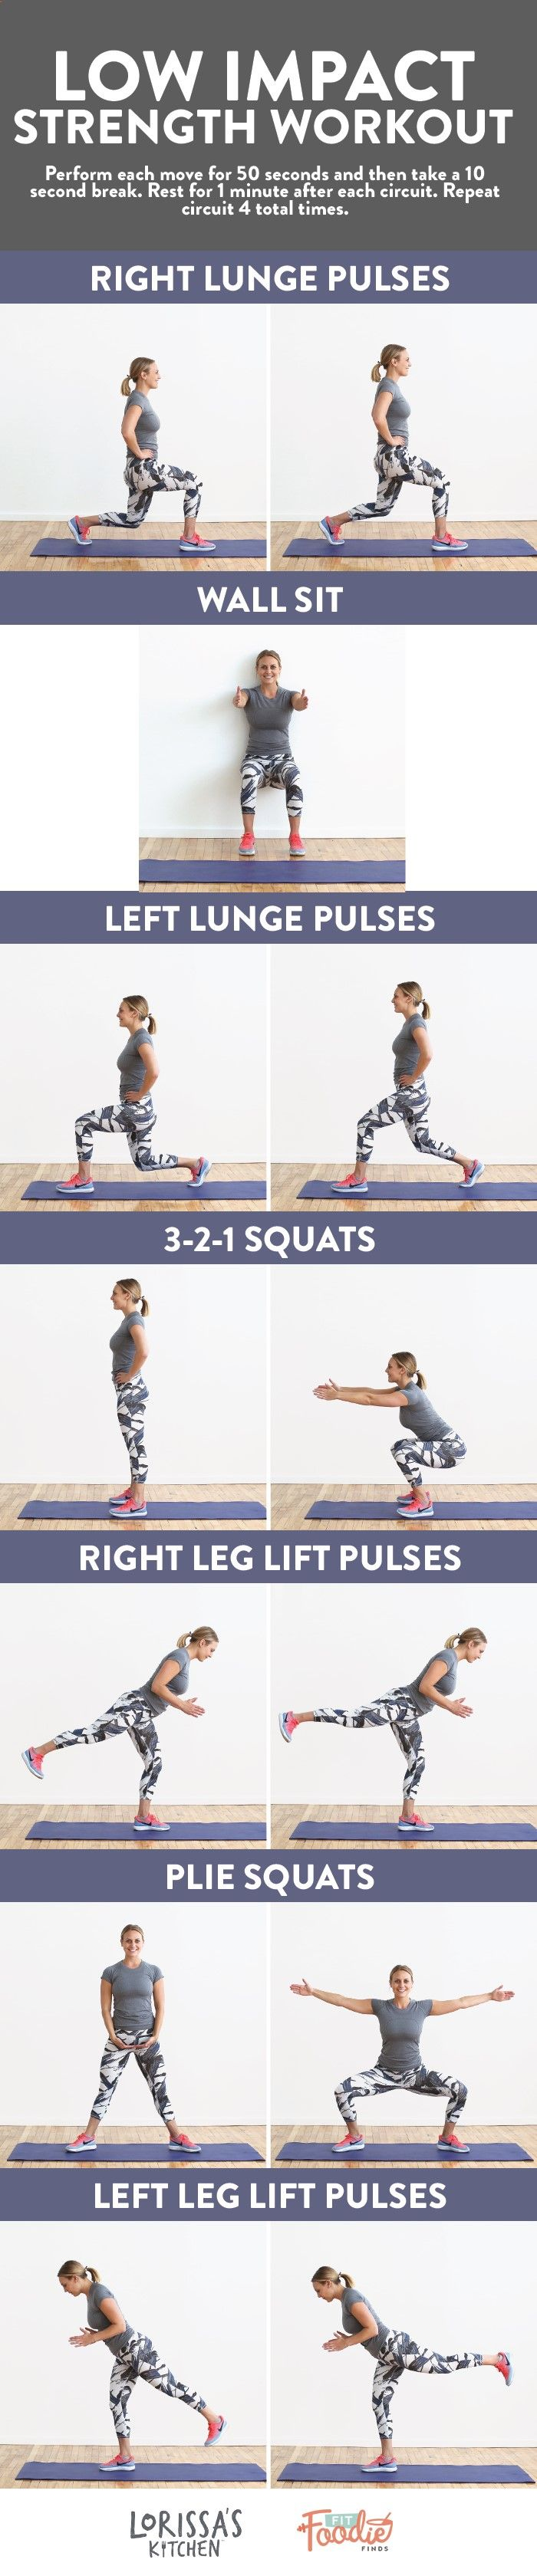 Looking for a lowimpact workout? Try this 32minute low